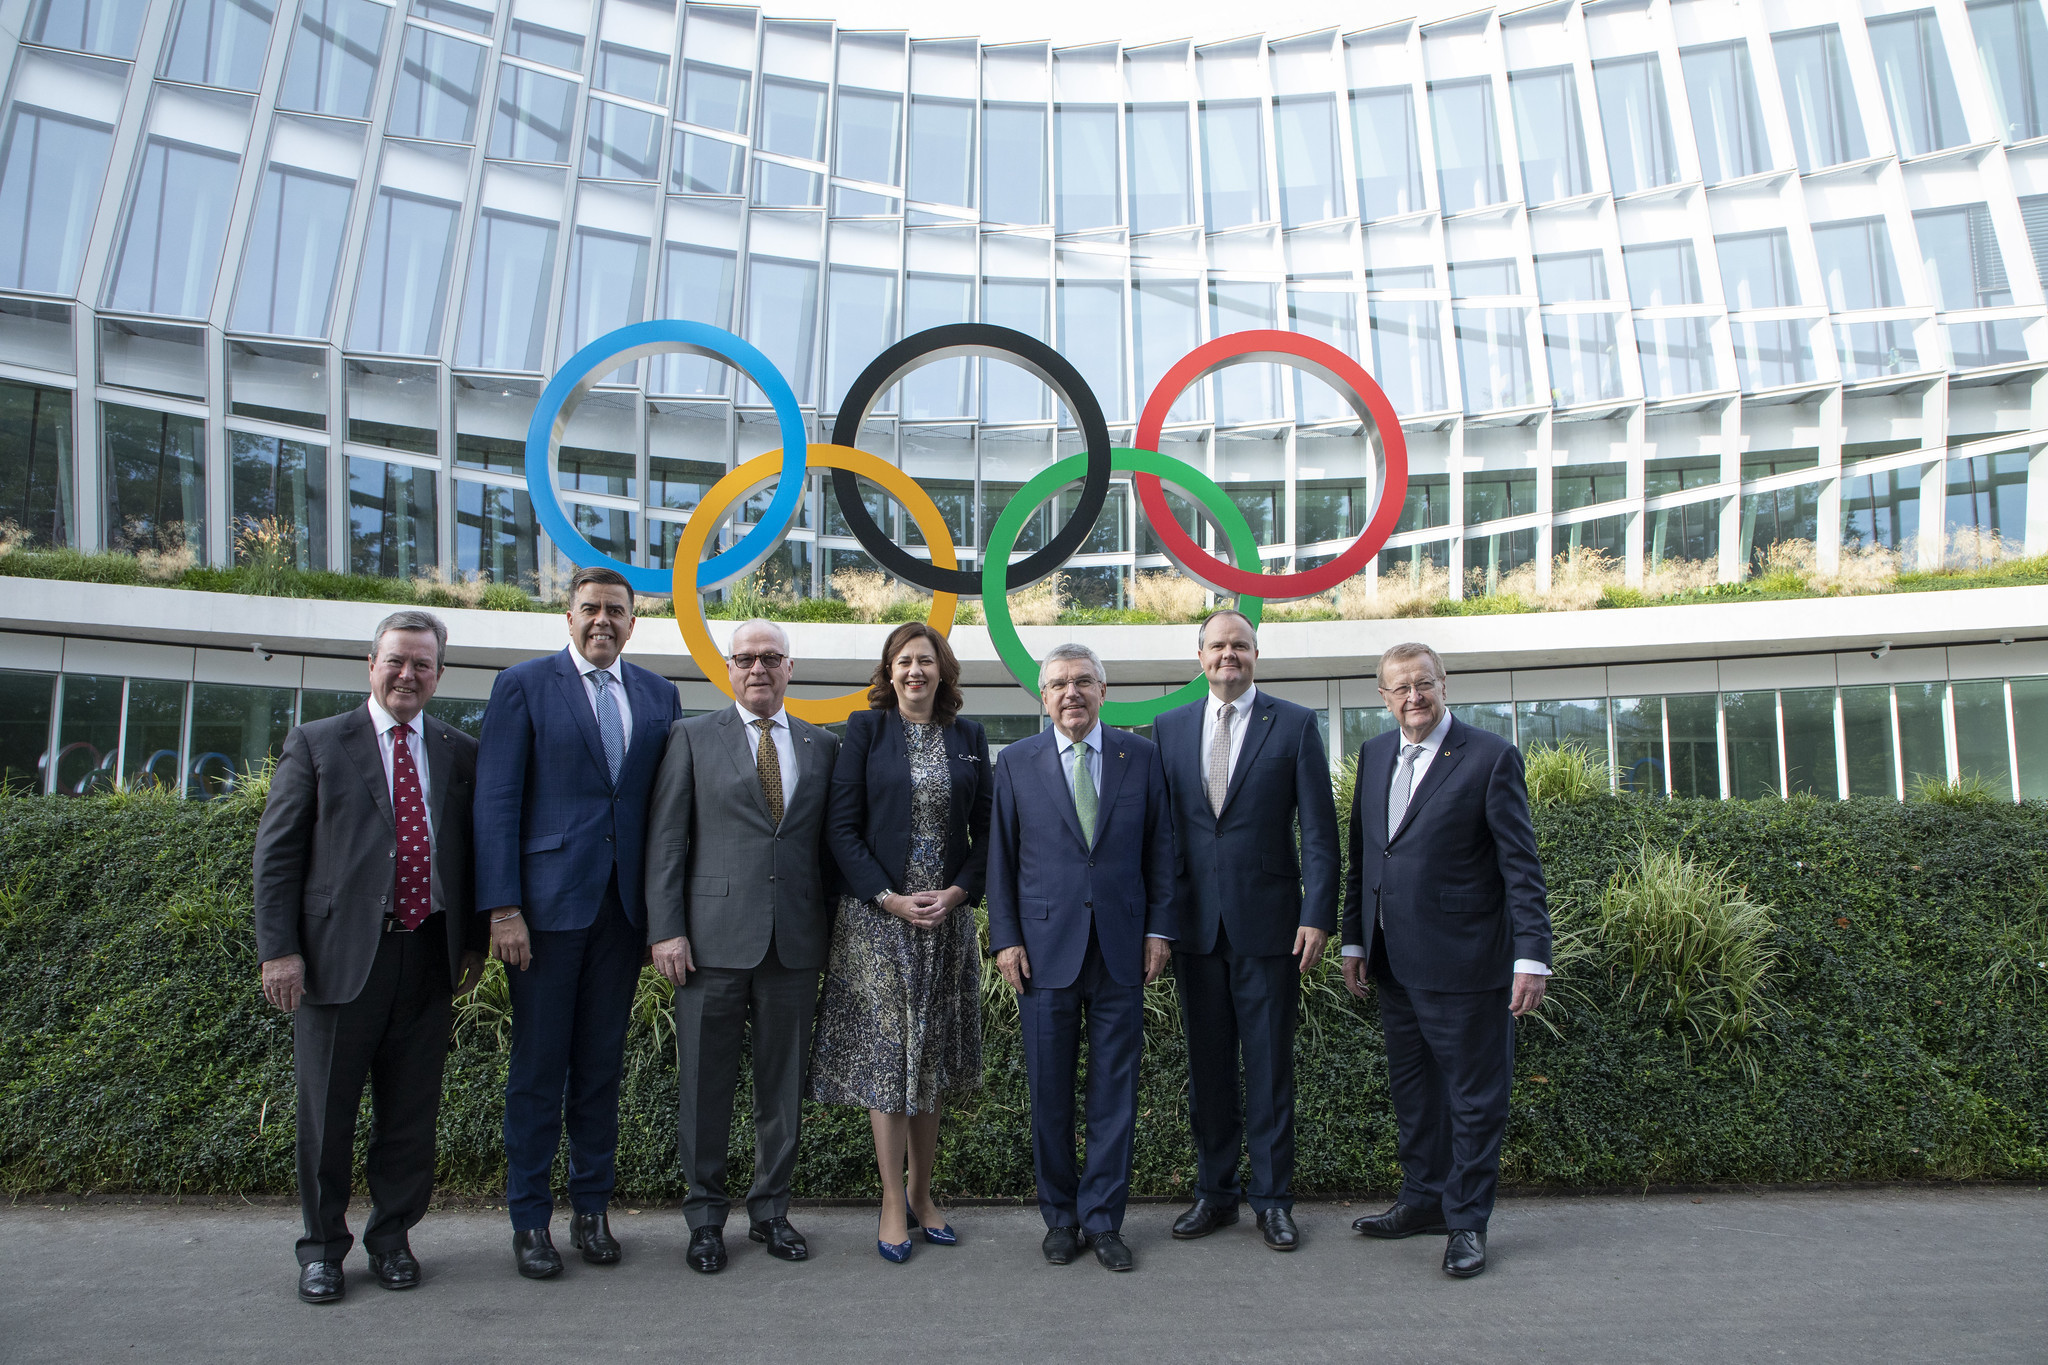 A delegation from Australia met IOC officials, including President Thomas Bach, third from right, in Lausanne ©IOC